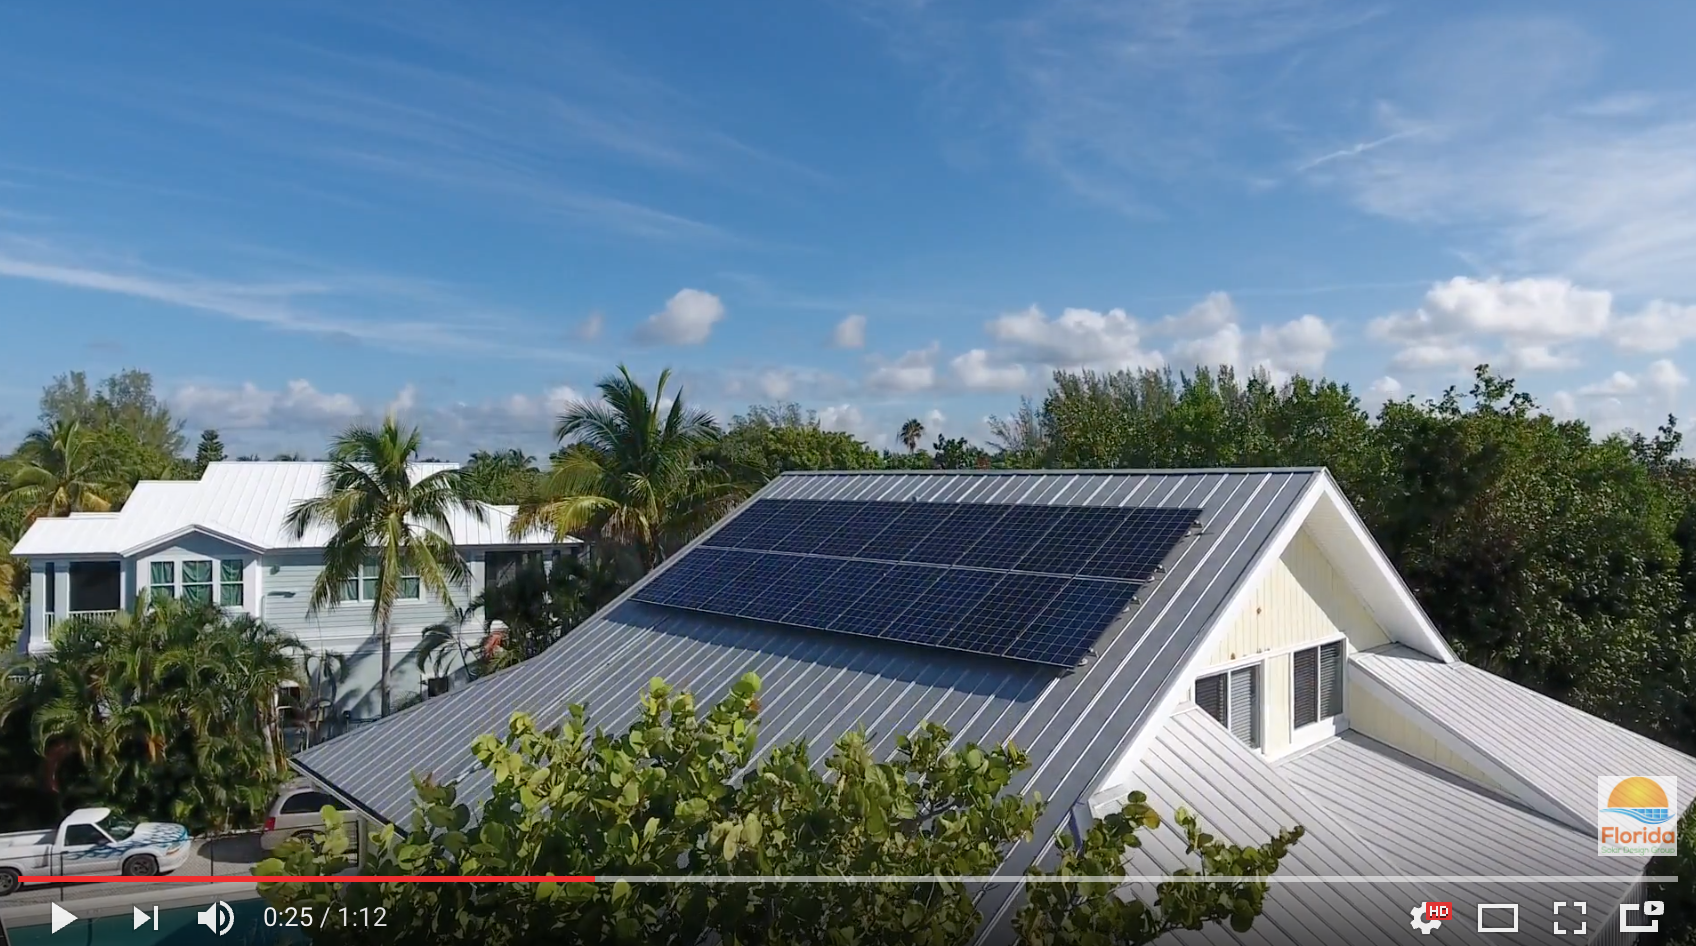 Do it yourself diy solar photovoltaic pv panels florida solar you can install solar panels yourself solutioingenieria Choice Image